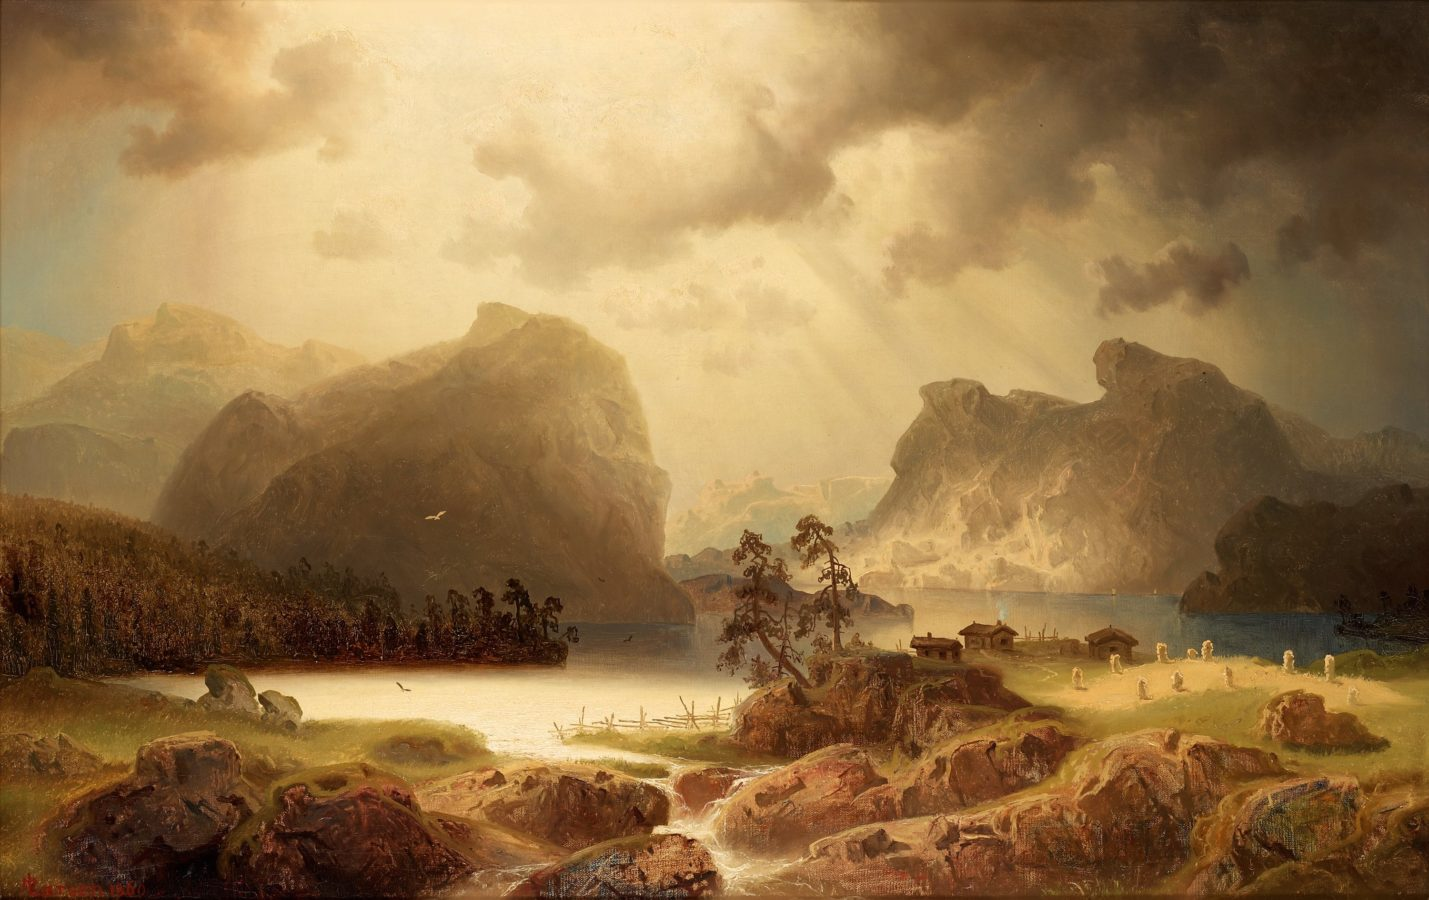 Marcus Larson, Fjord Landscape in Norway, 1860 Location Unknown